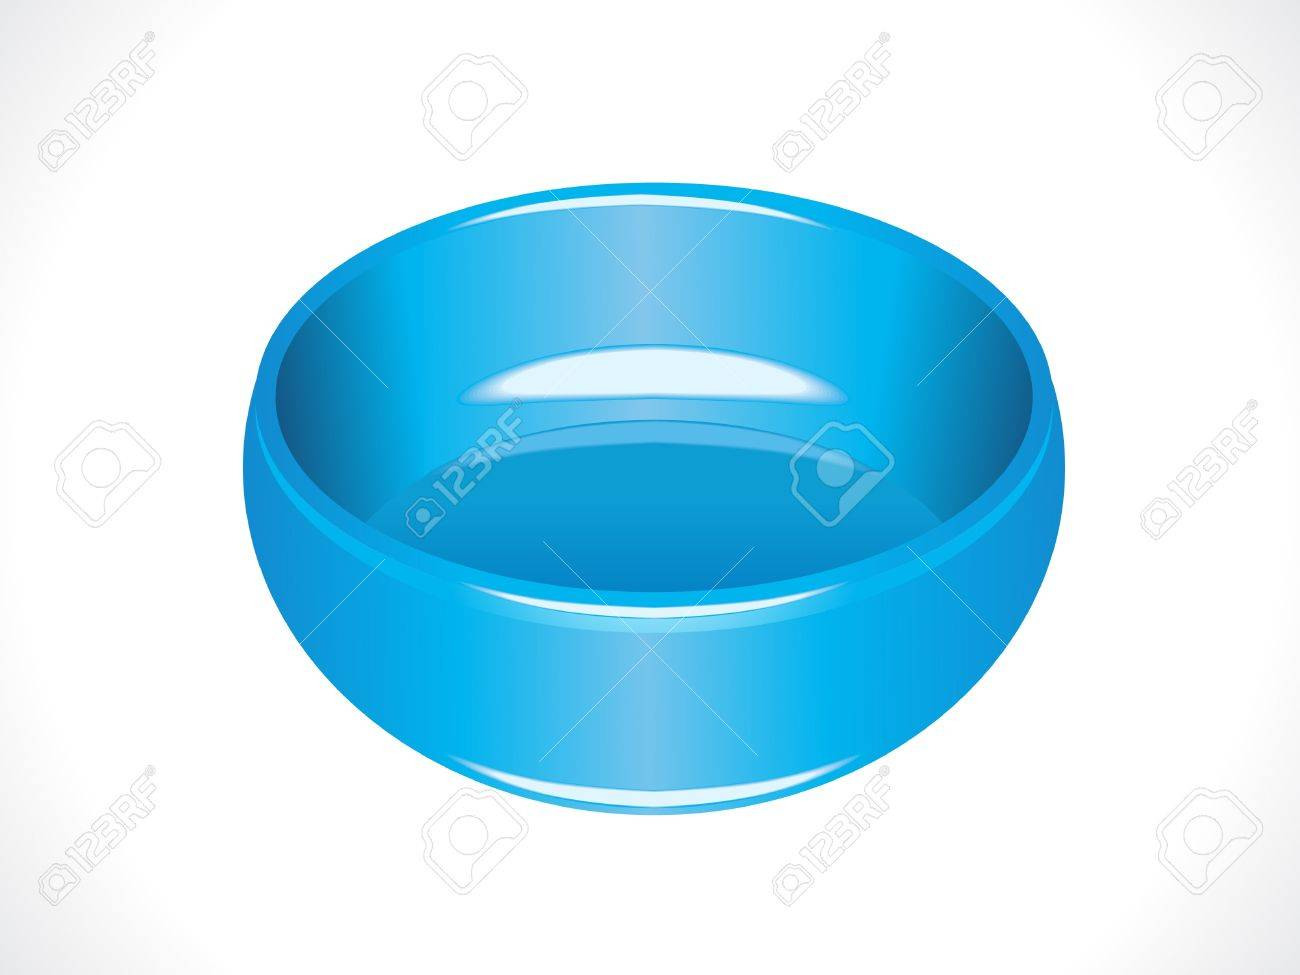 Plastic Glossy Blue Tub Vector Illustration Royalty Free Cliparts ...